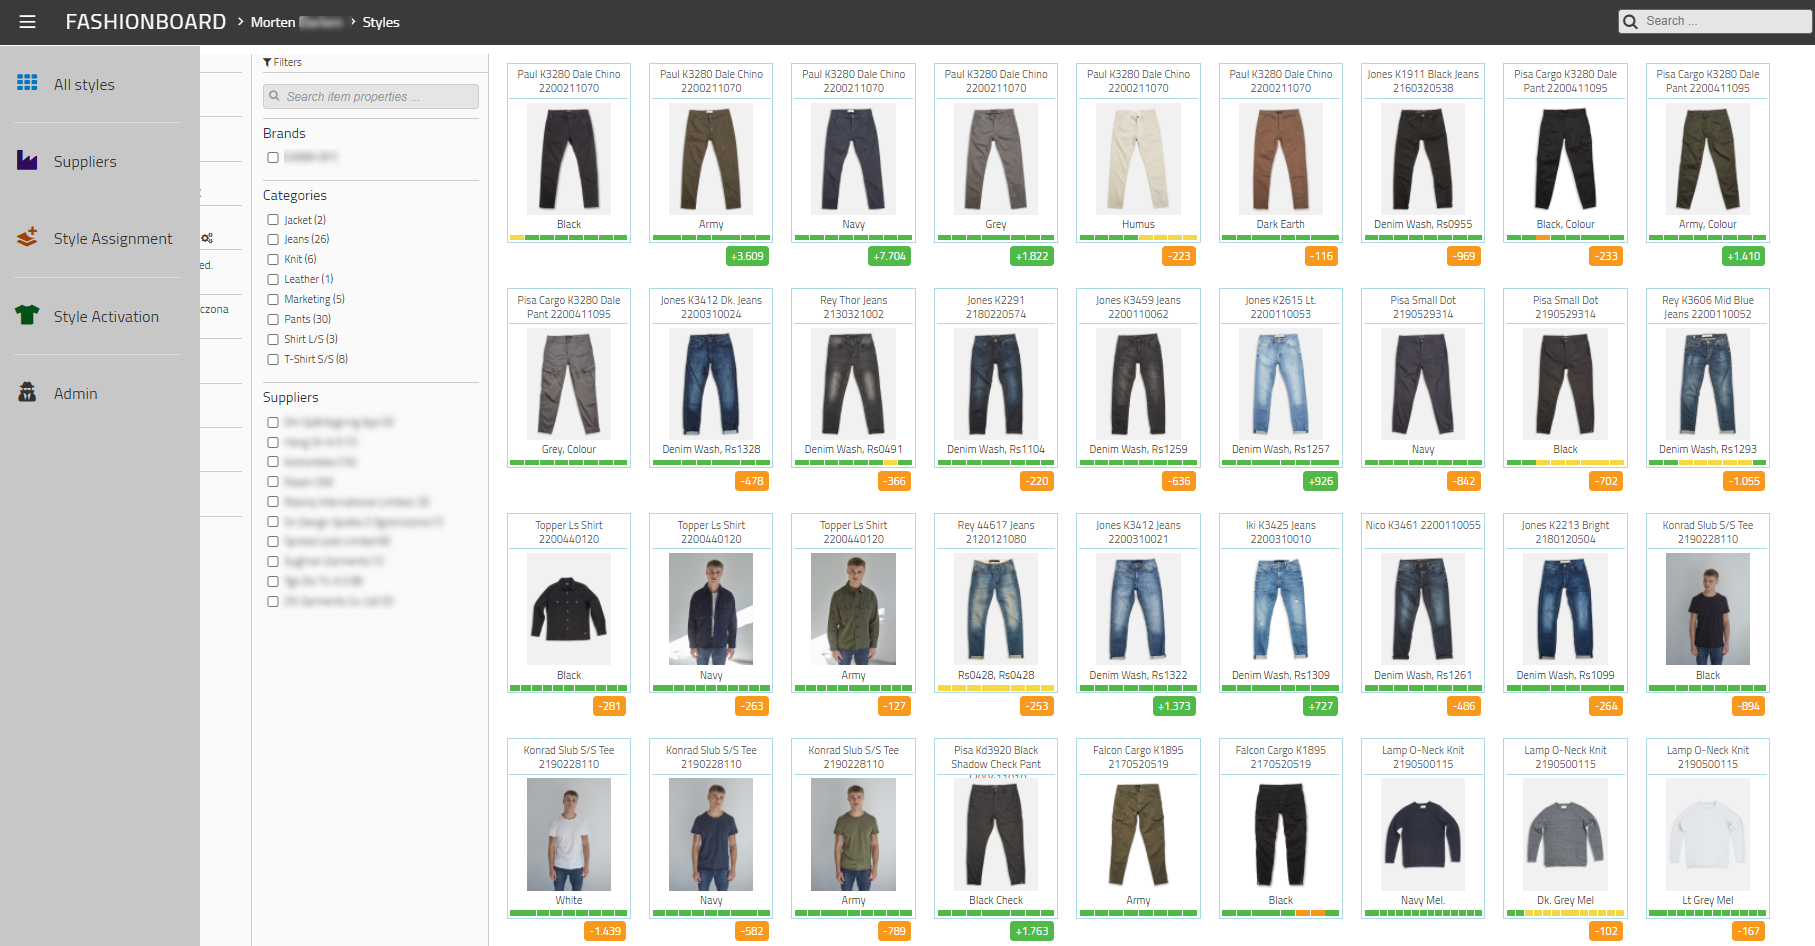 FashionBoard Software - FashionBoard overview of all styles